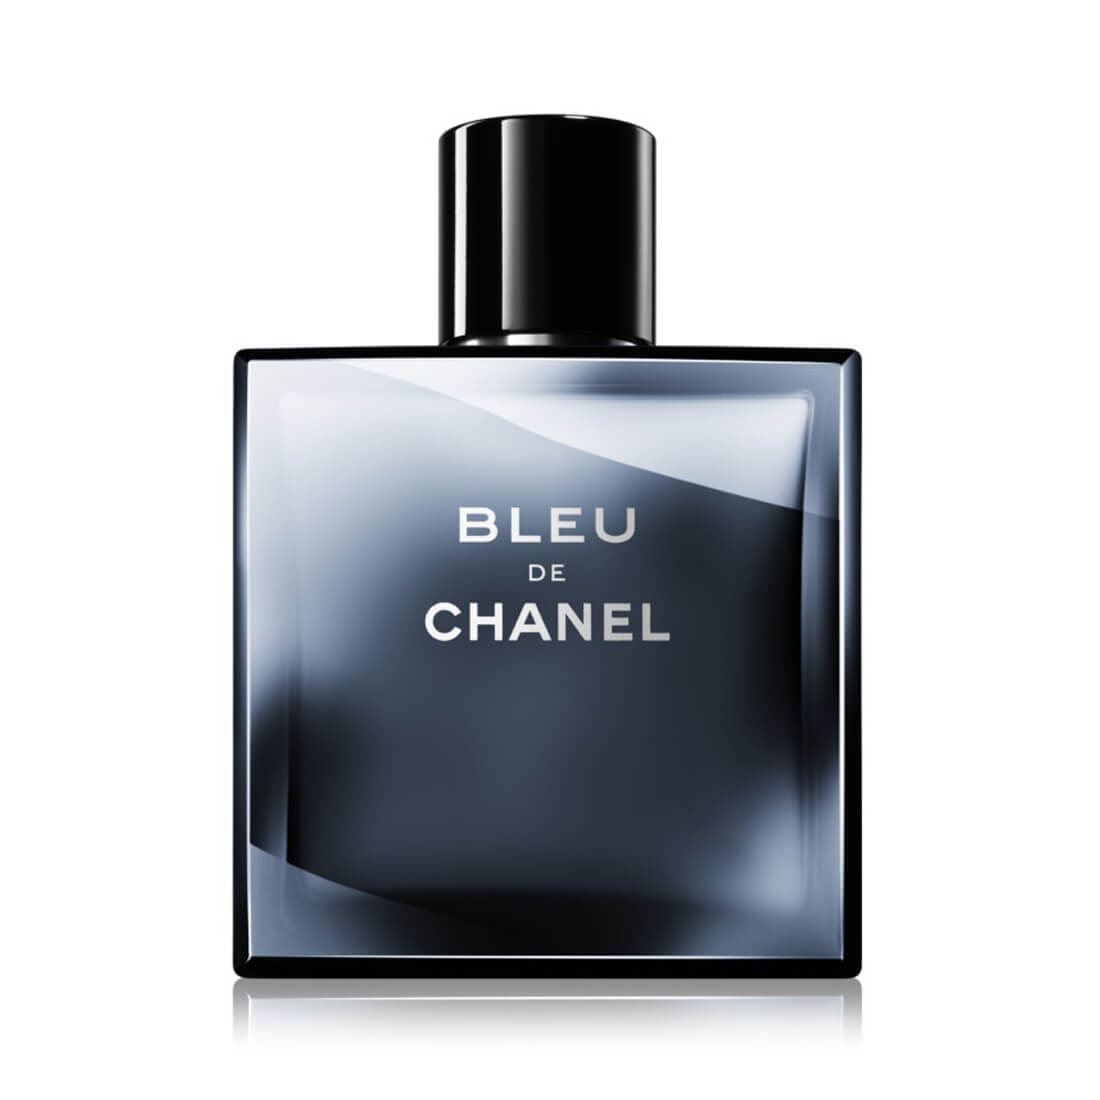 Chanel Bleu De Chanel Eau De Toilette For Men - 150ml